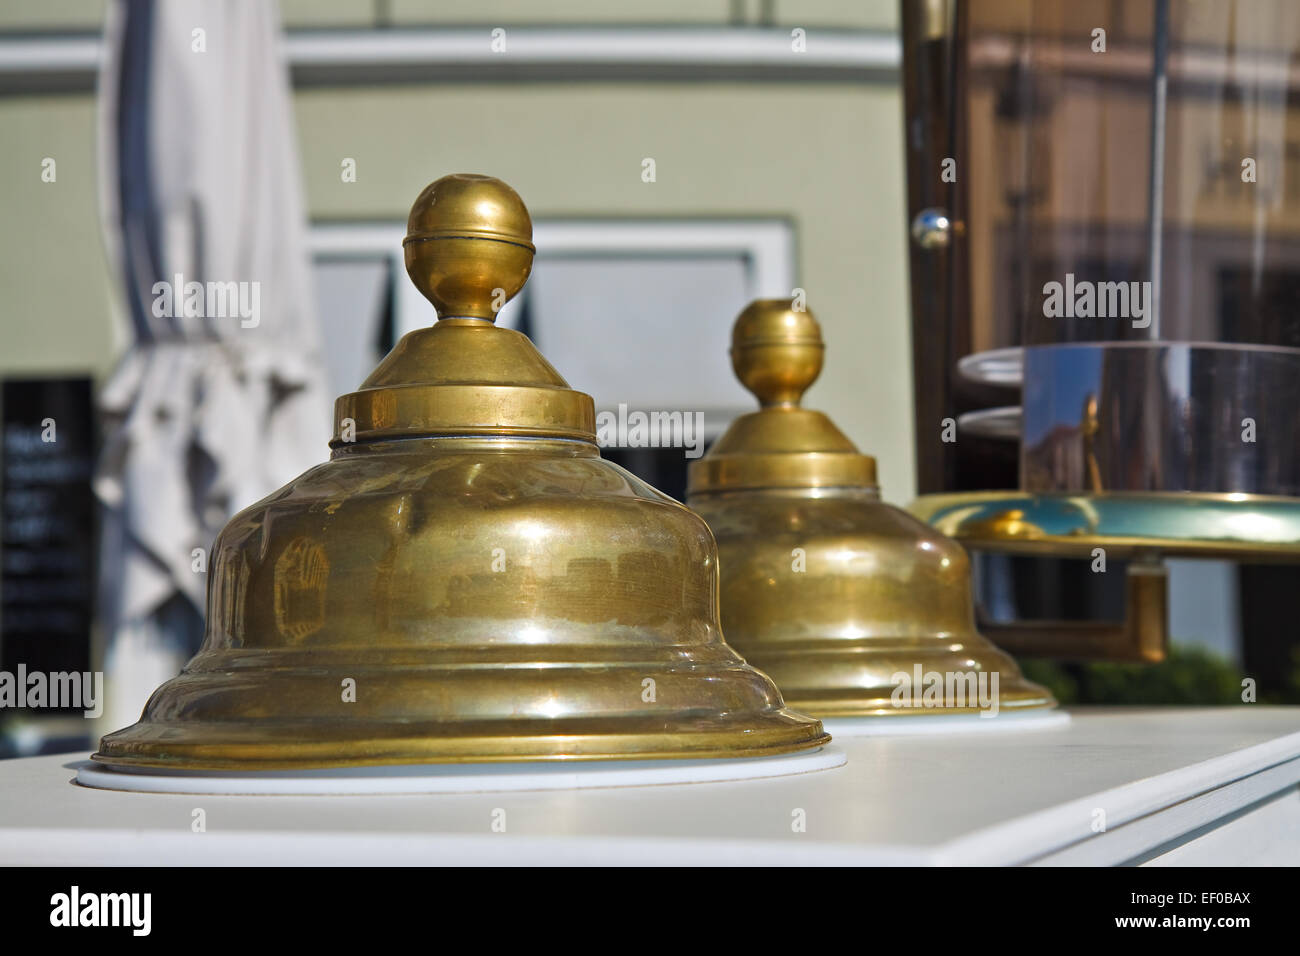 Gold-plated bells - Stock Image